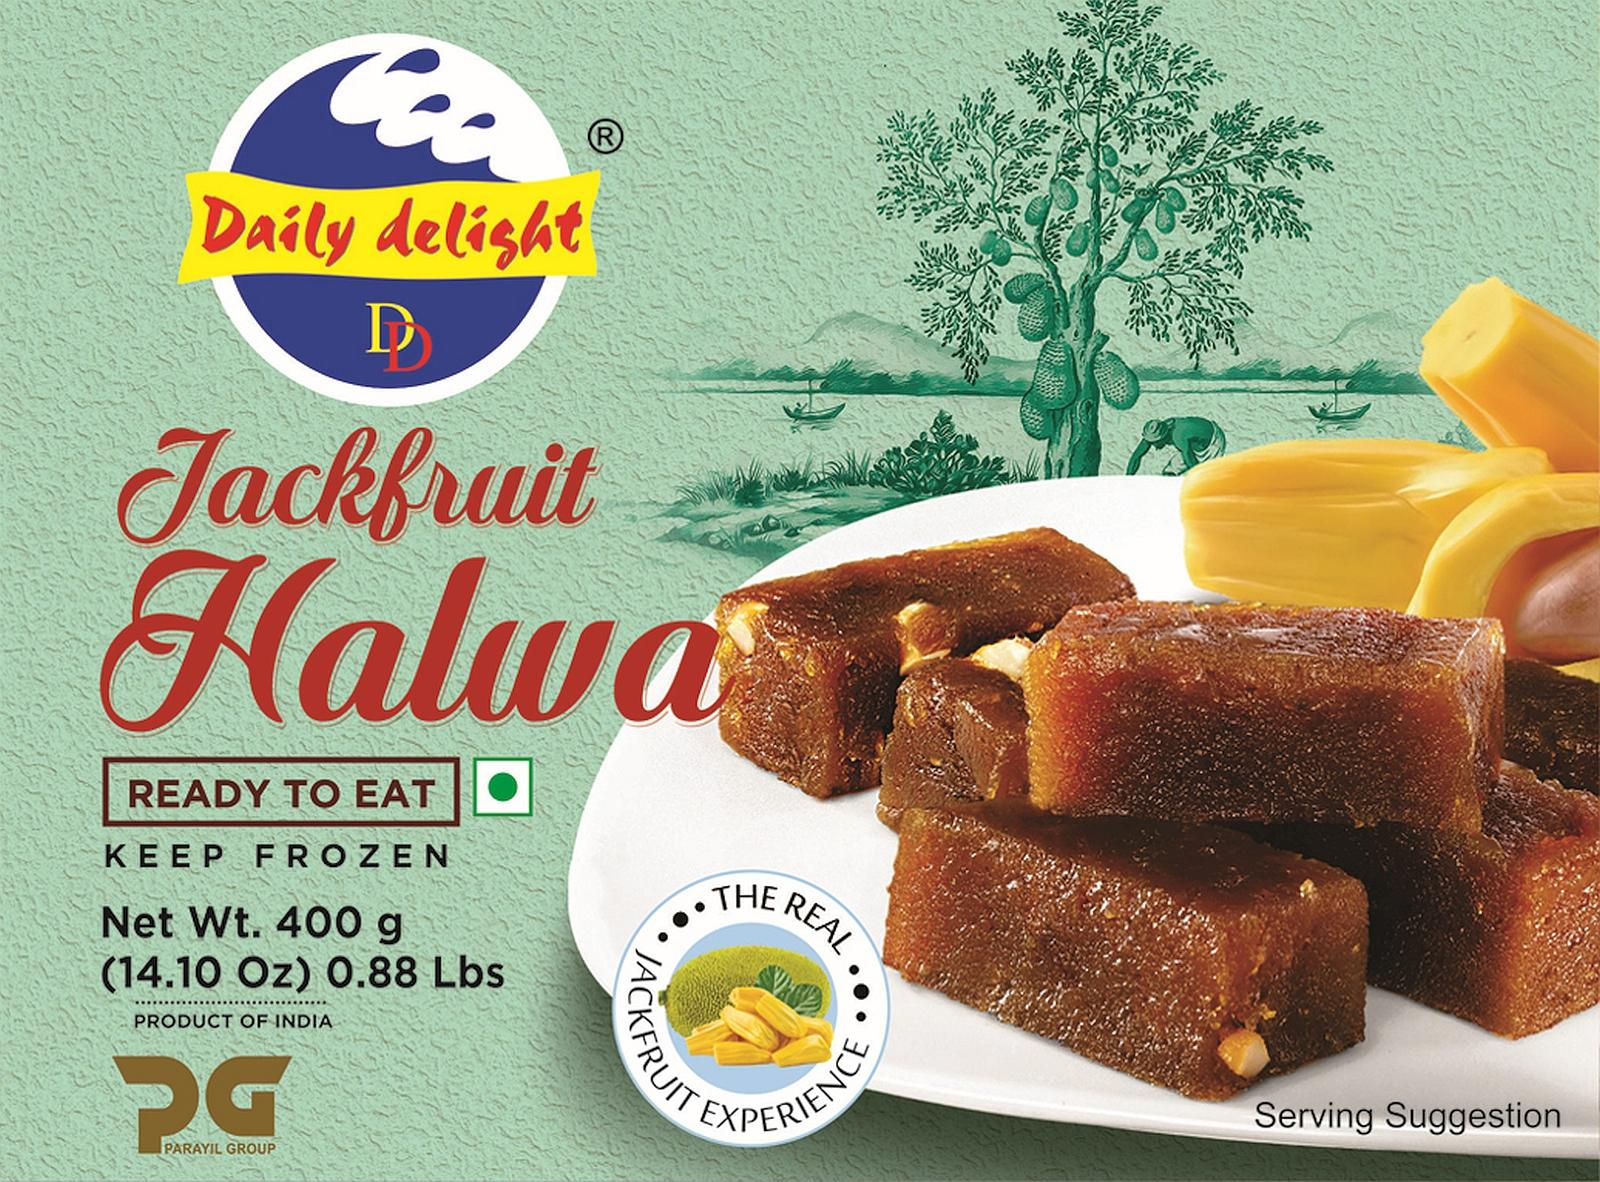 Daily Delight Jackfruit Halwa